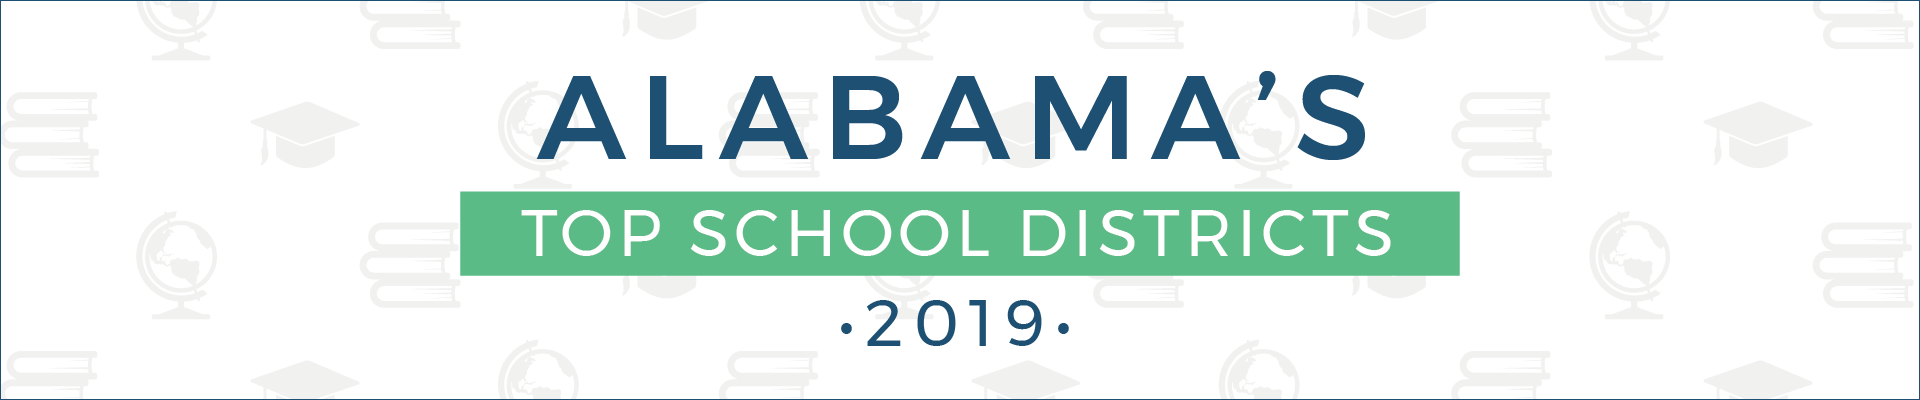 top school districts, 2019 - alabama